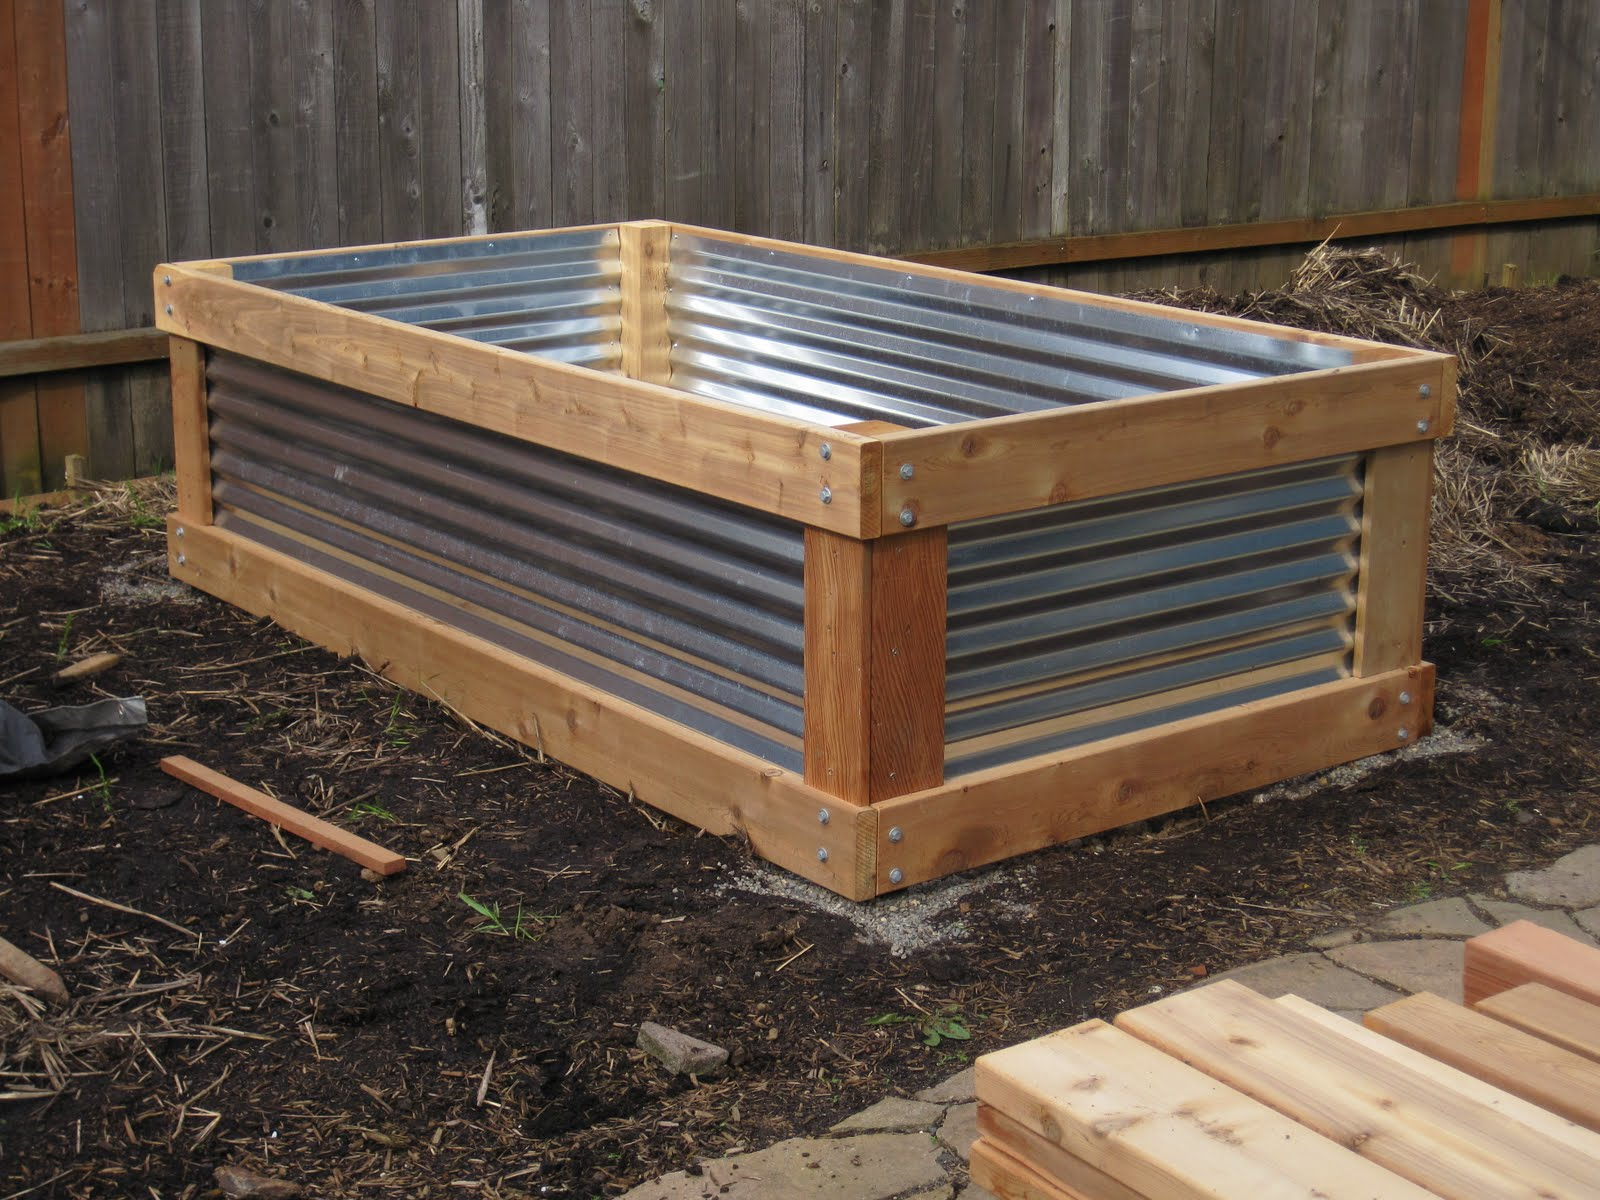 Aristata Land Arts CEDAR amp METAL RAISED BED PROJECT